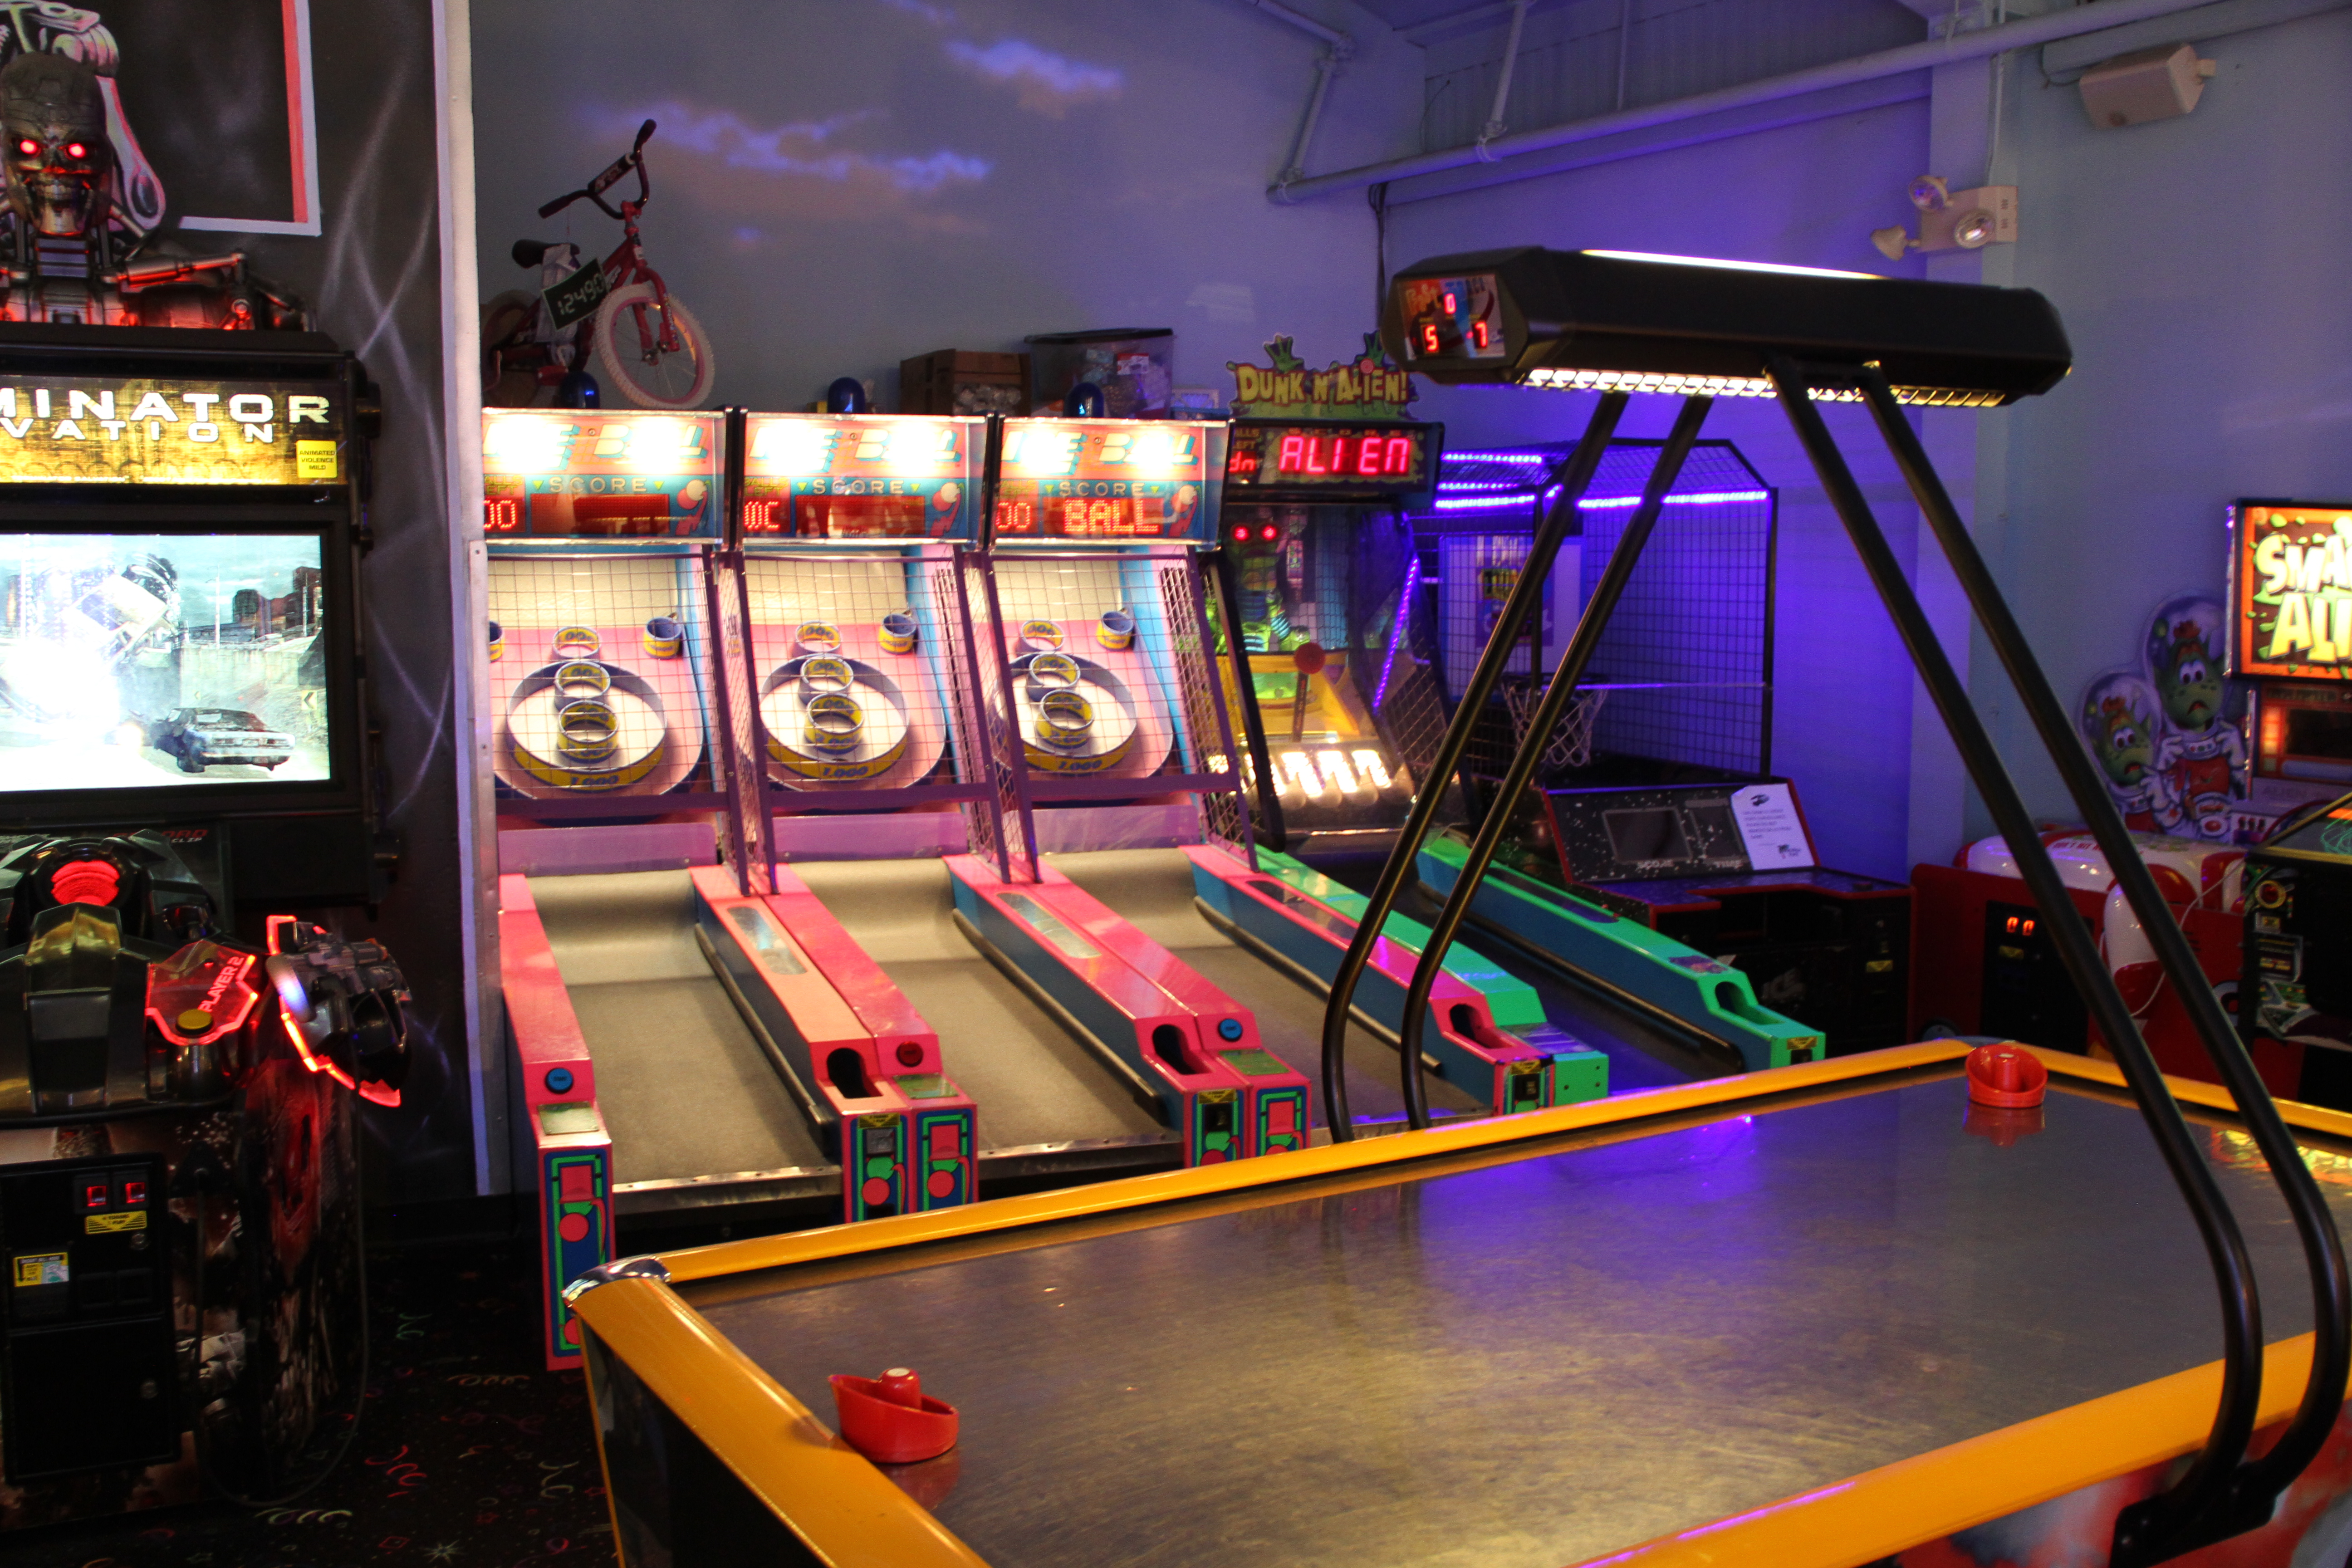 Arcade Game Room Skeeball